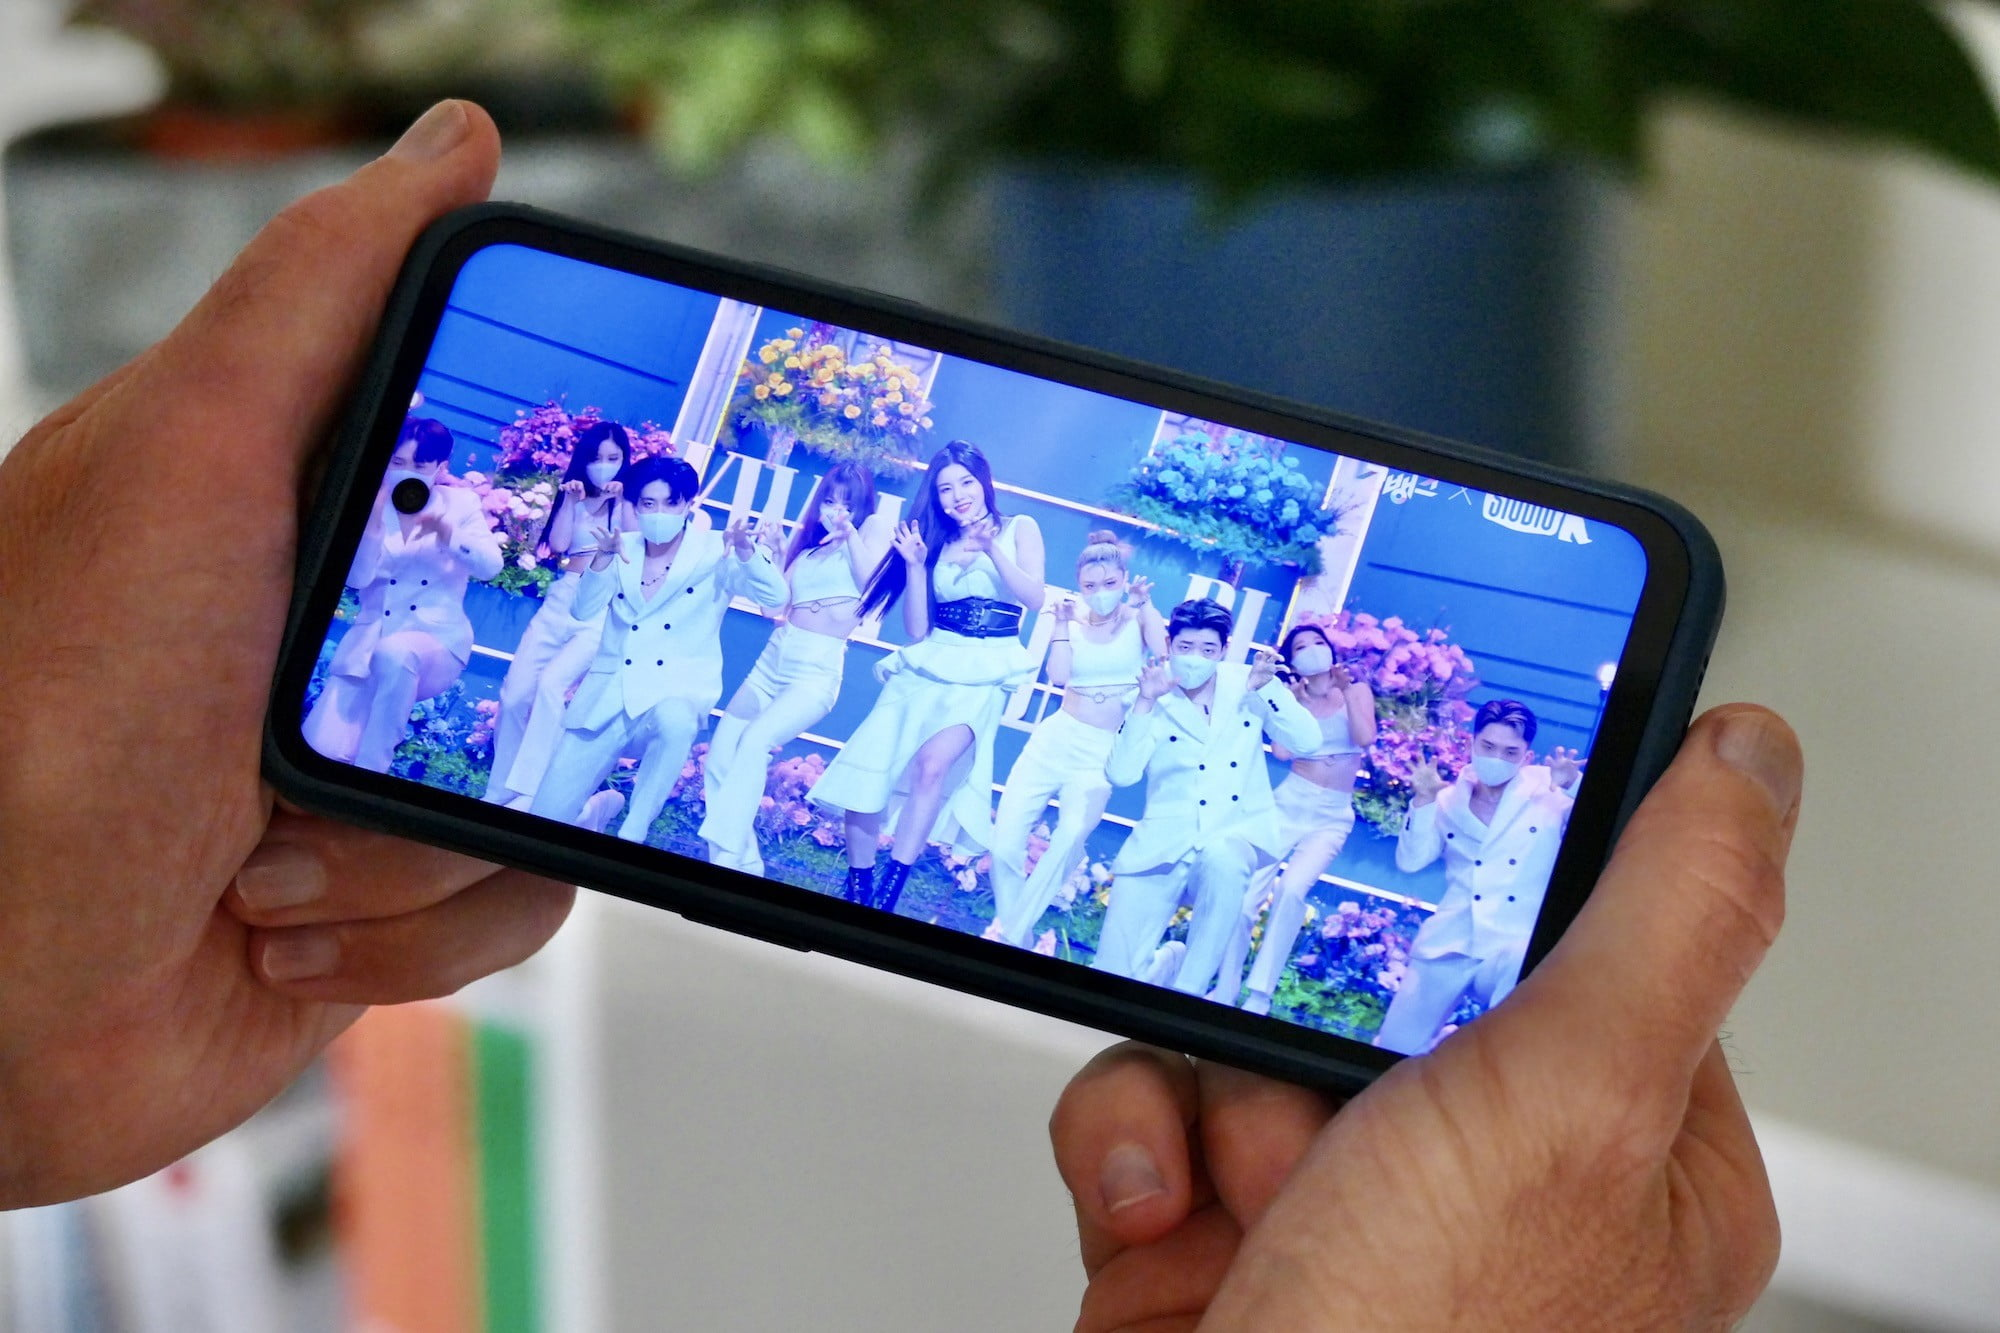 Video playing on the Nokia XR20.